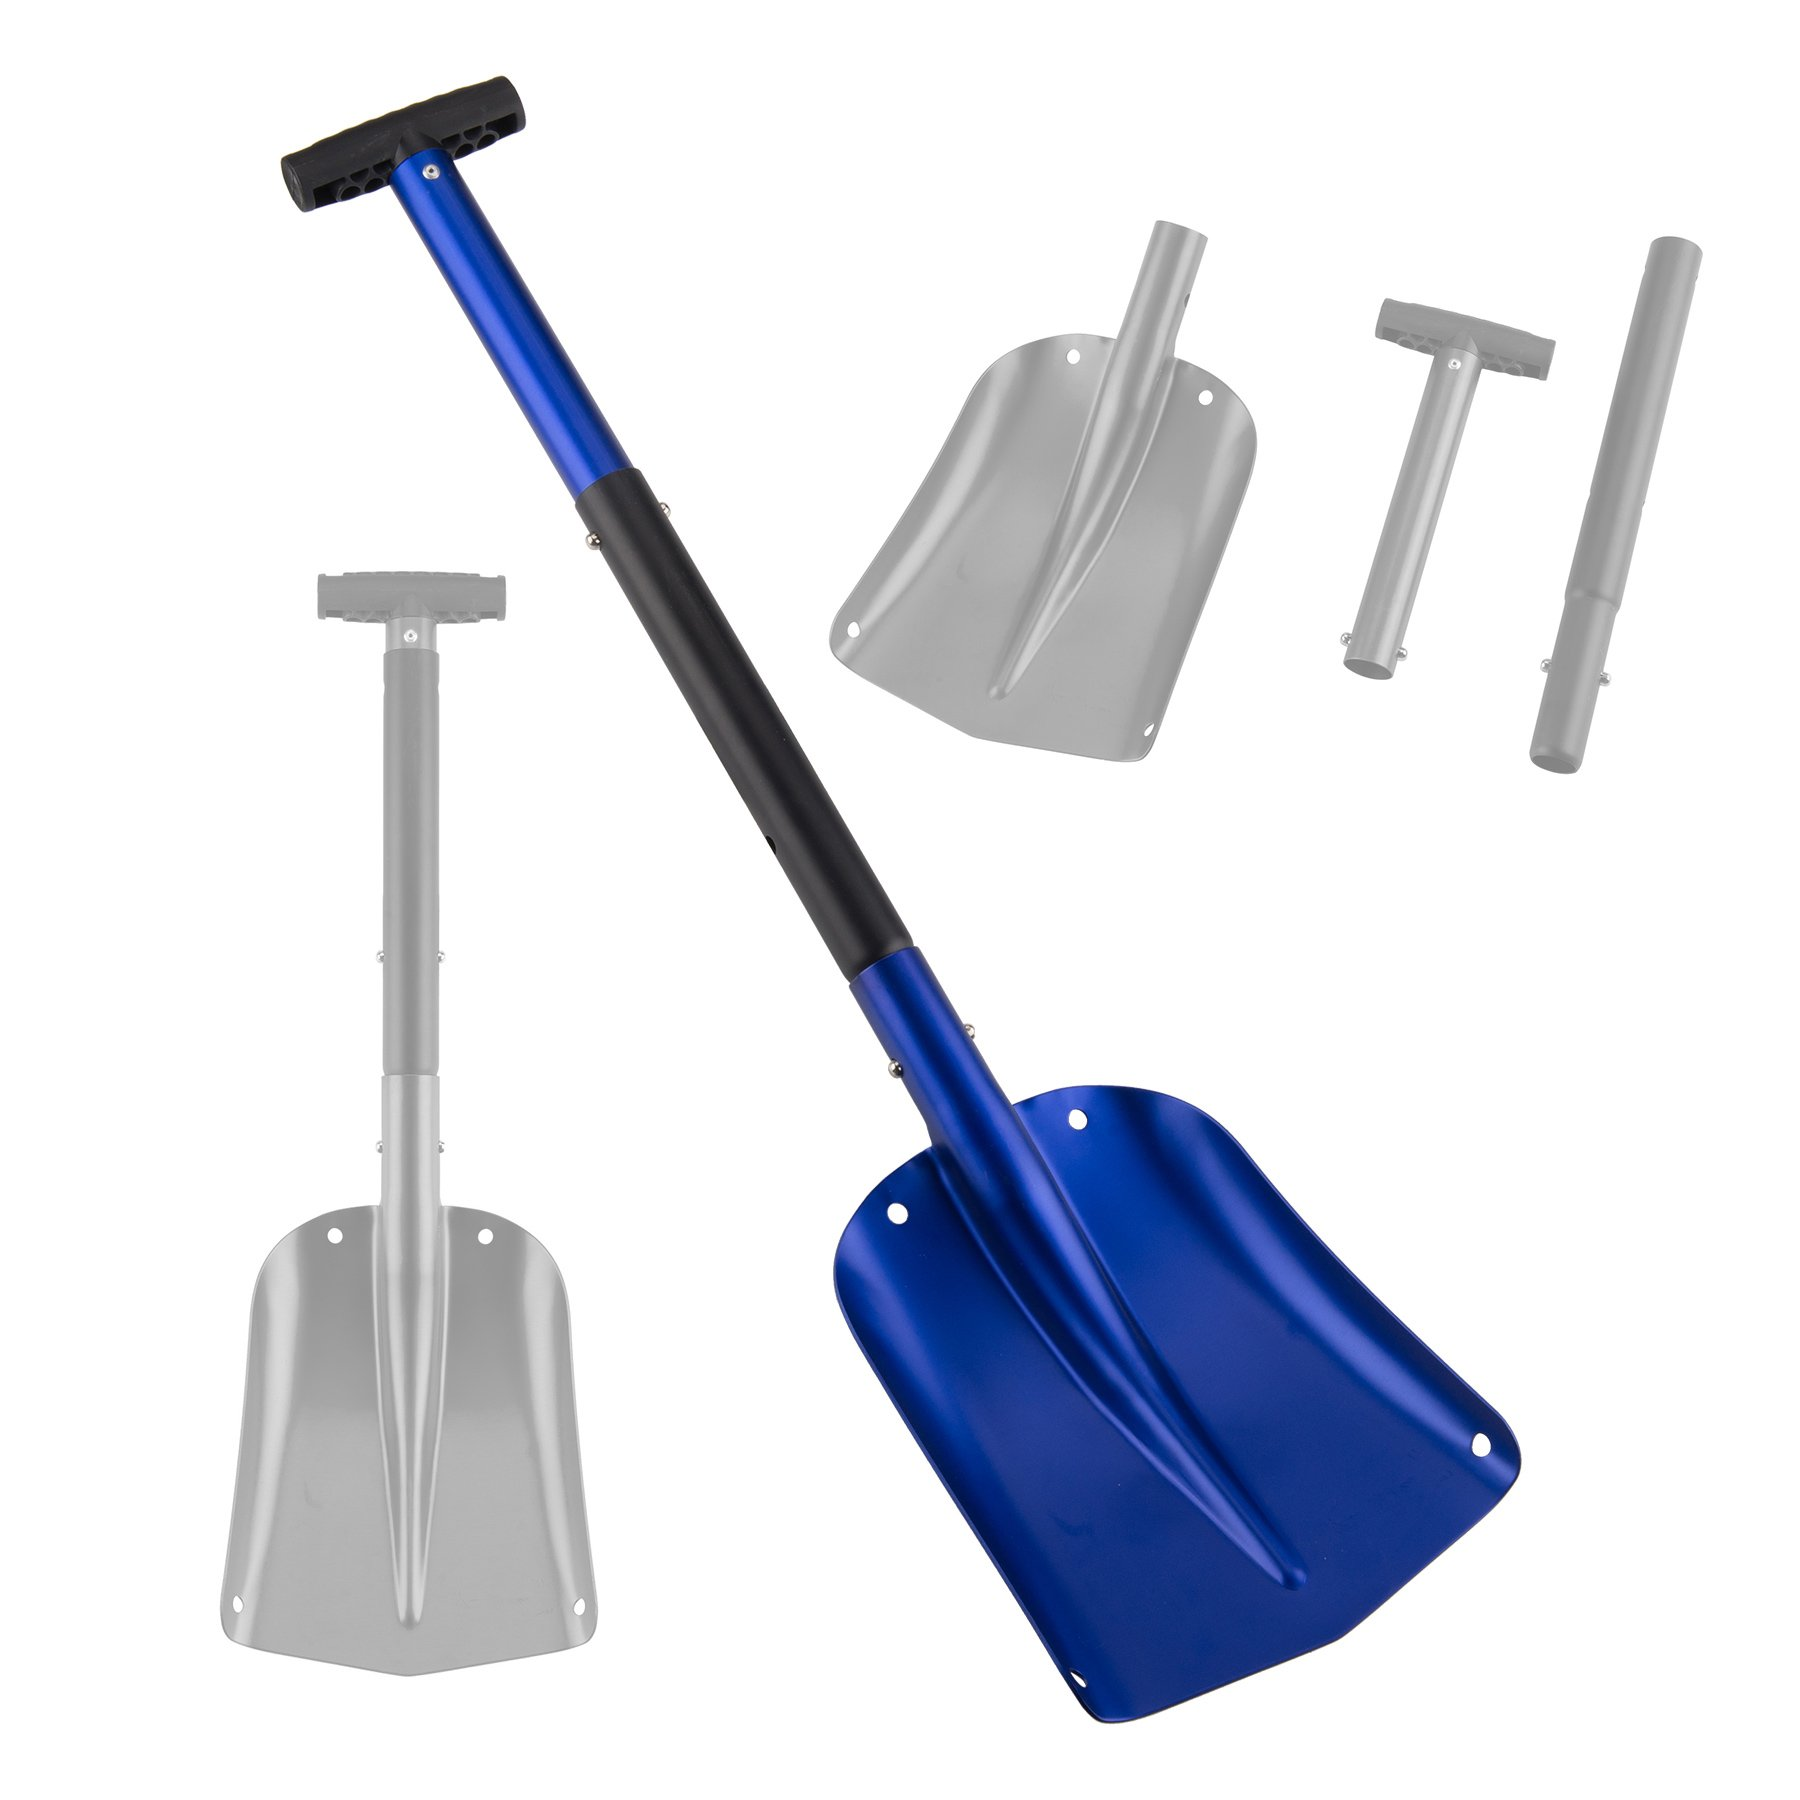 Pinty 26'' - 32'' Aluminum Lightweight Utility Shovel Adjustable and Collapsible Winter Snow Shovels for Car Camping Garden (Blue) by Pinty